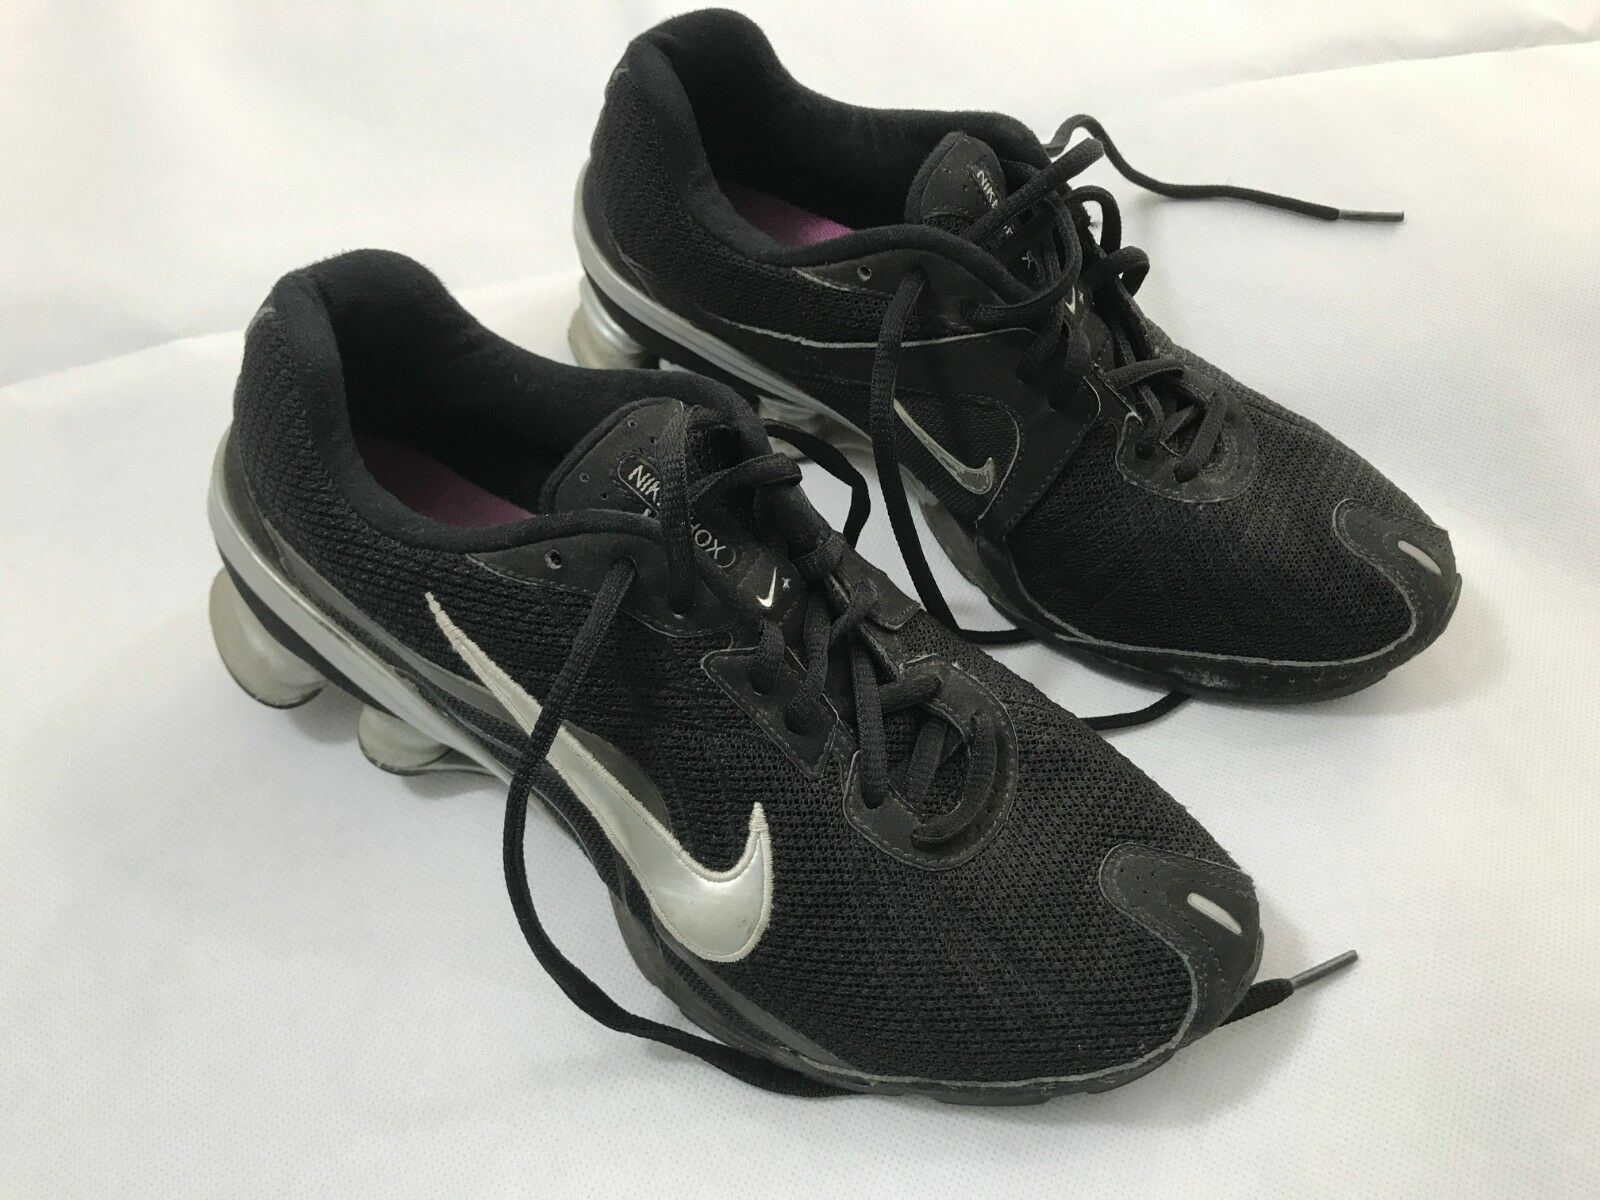 quality design 4f5e6 6eda8 Women s Nike Shox Vivify 317541-002 Running Fitness Gym Training Shoes  Black 7.5